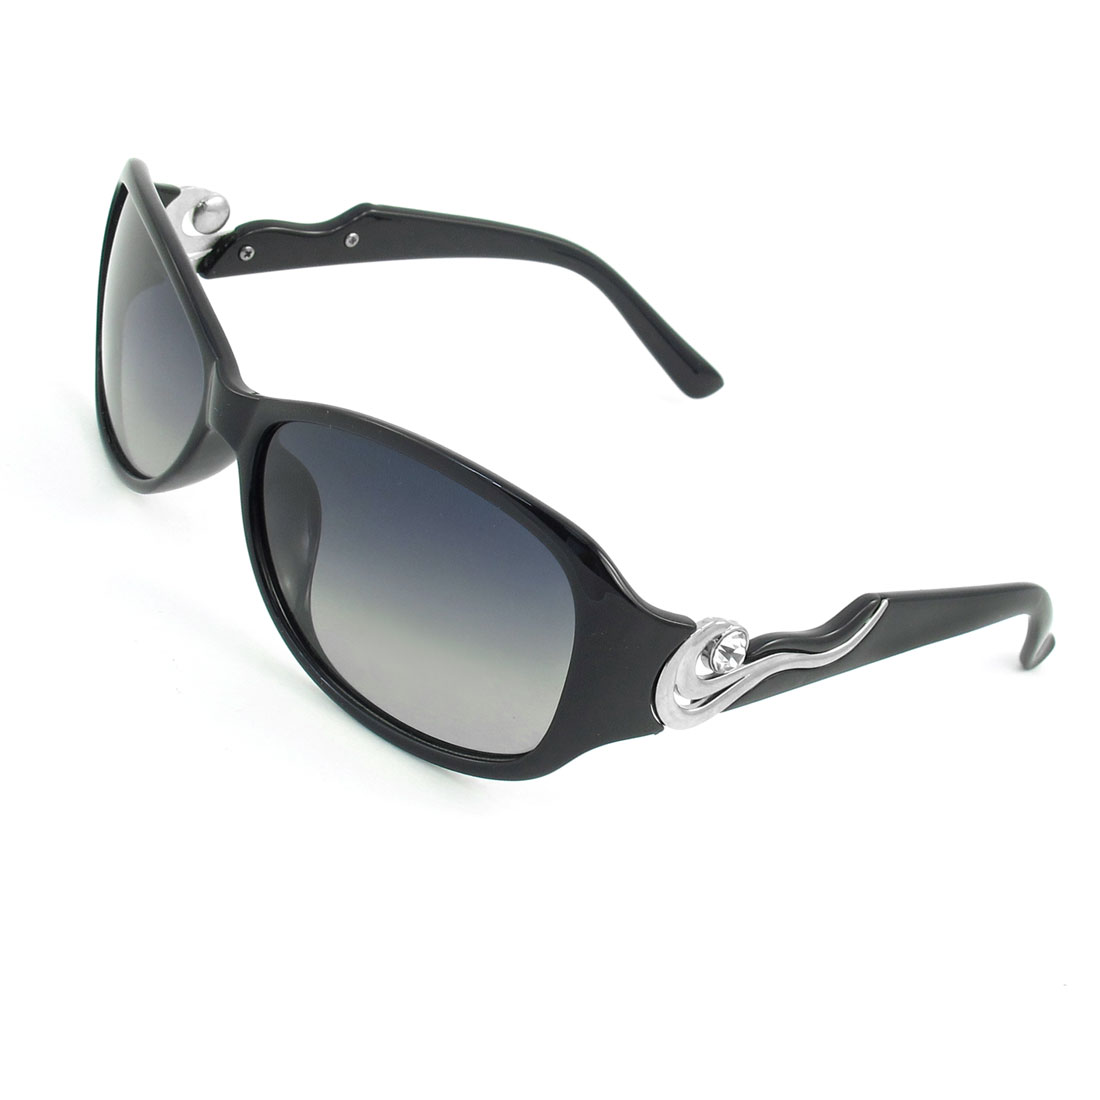 Black Full Rim Metal Wave Detail Temple Polarized Sunglasses for Women